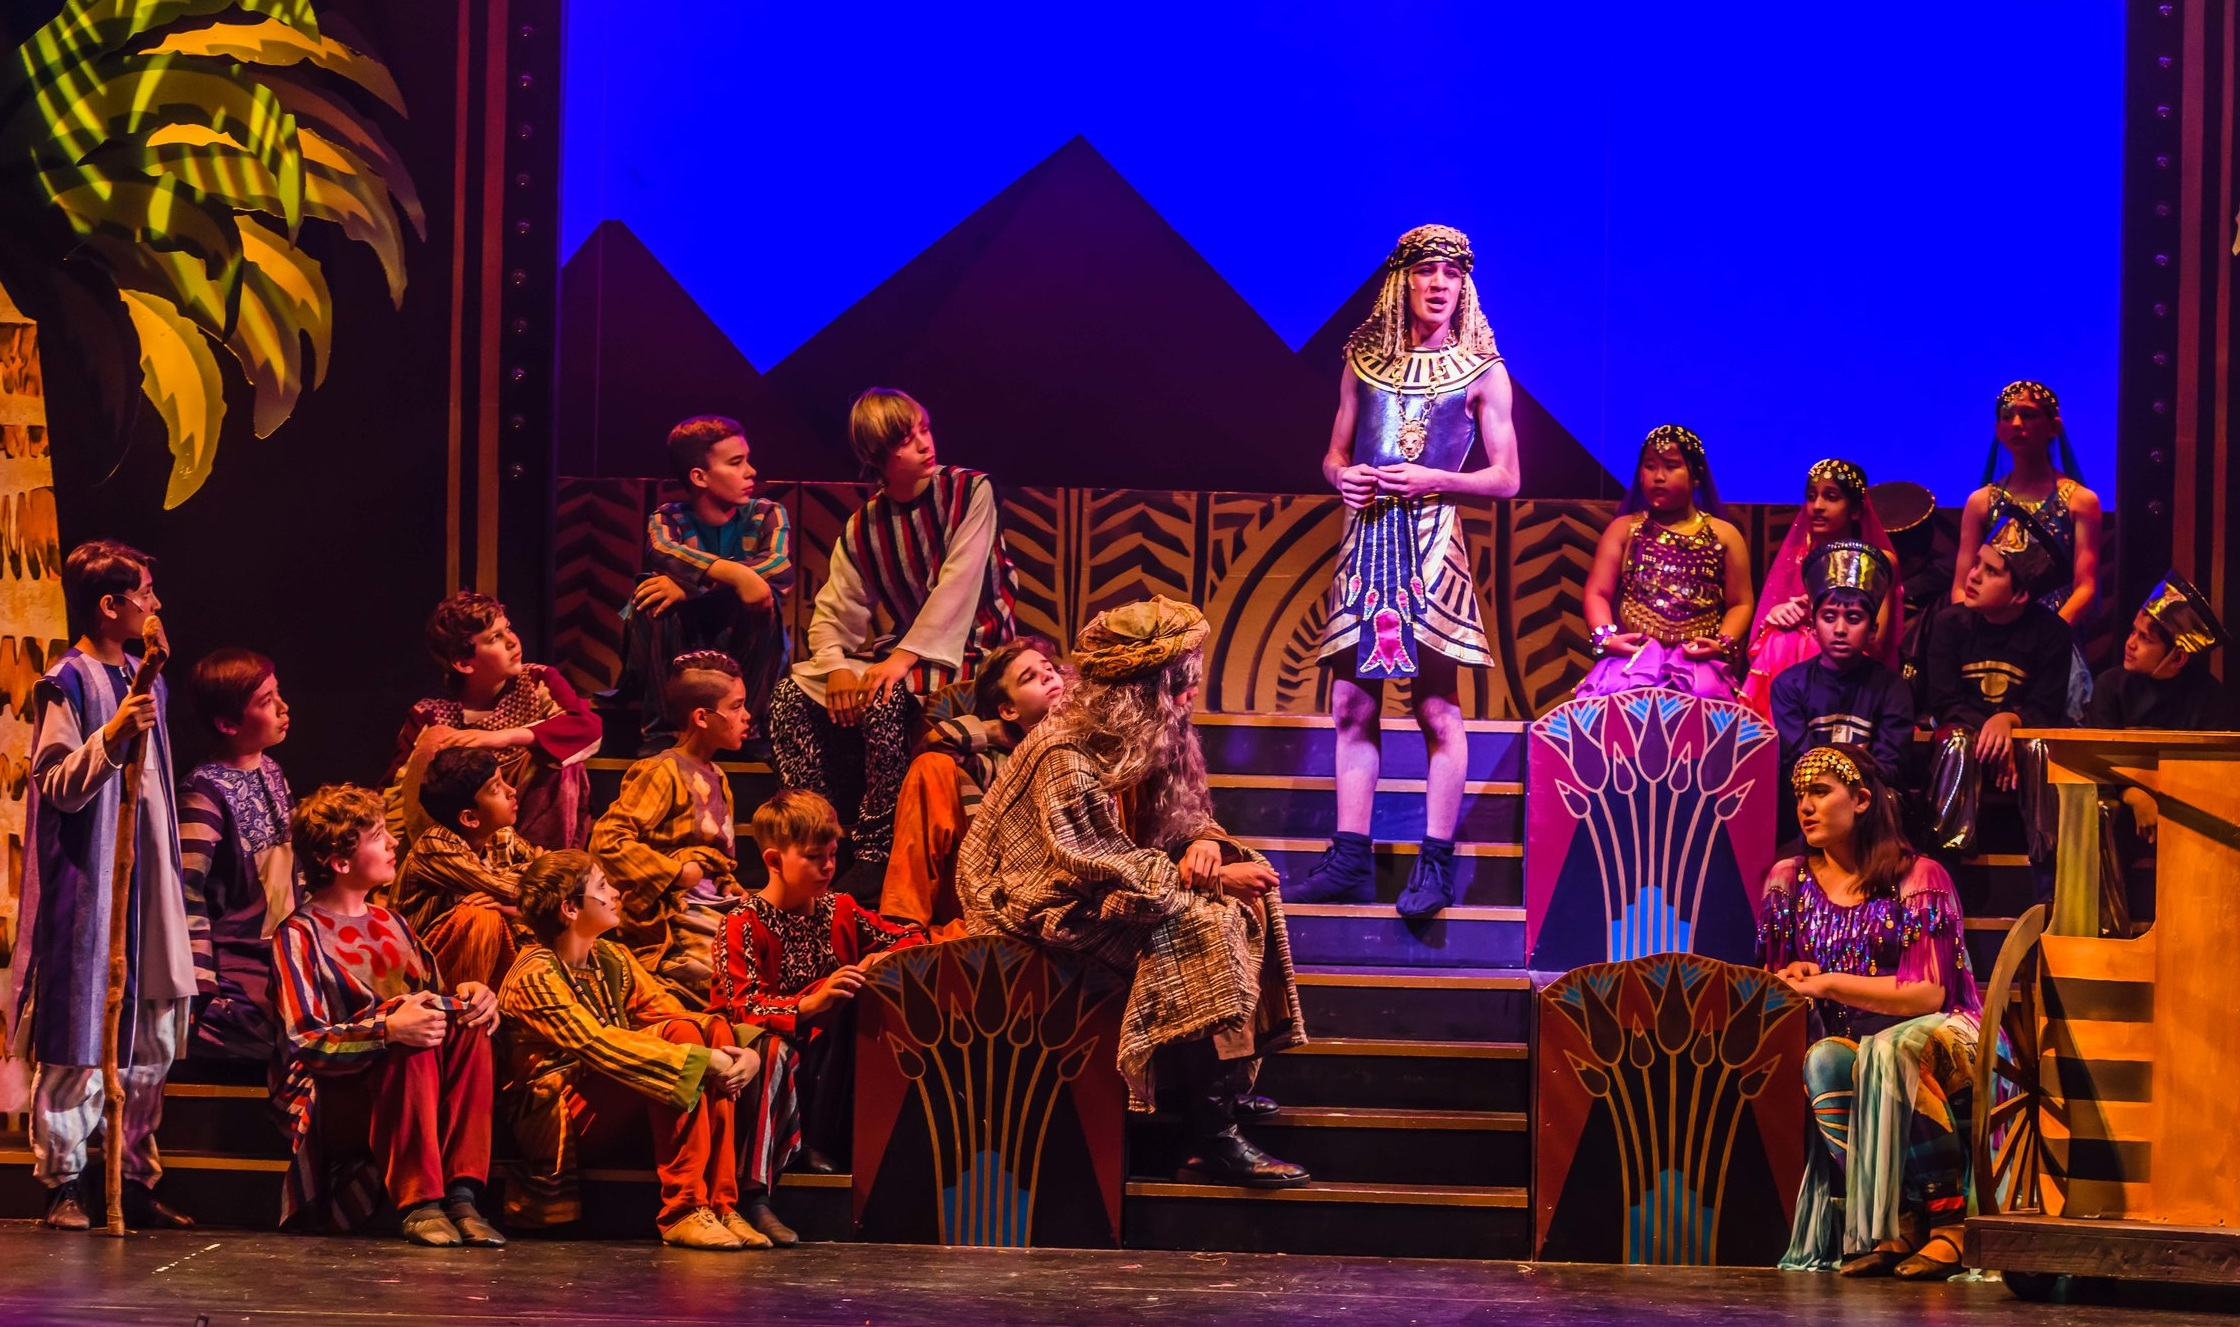 Joseph and the Amazing Technicolor Dreamcoat photos by Ravi Kohli (352).jpg